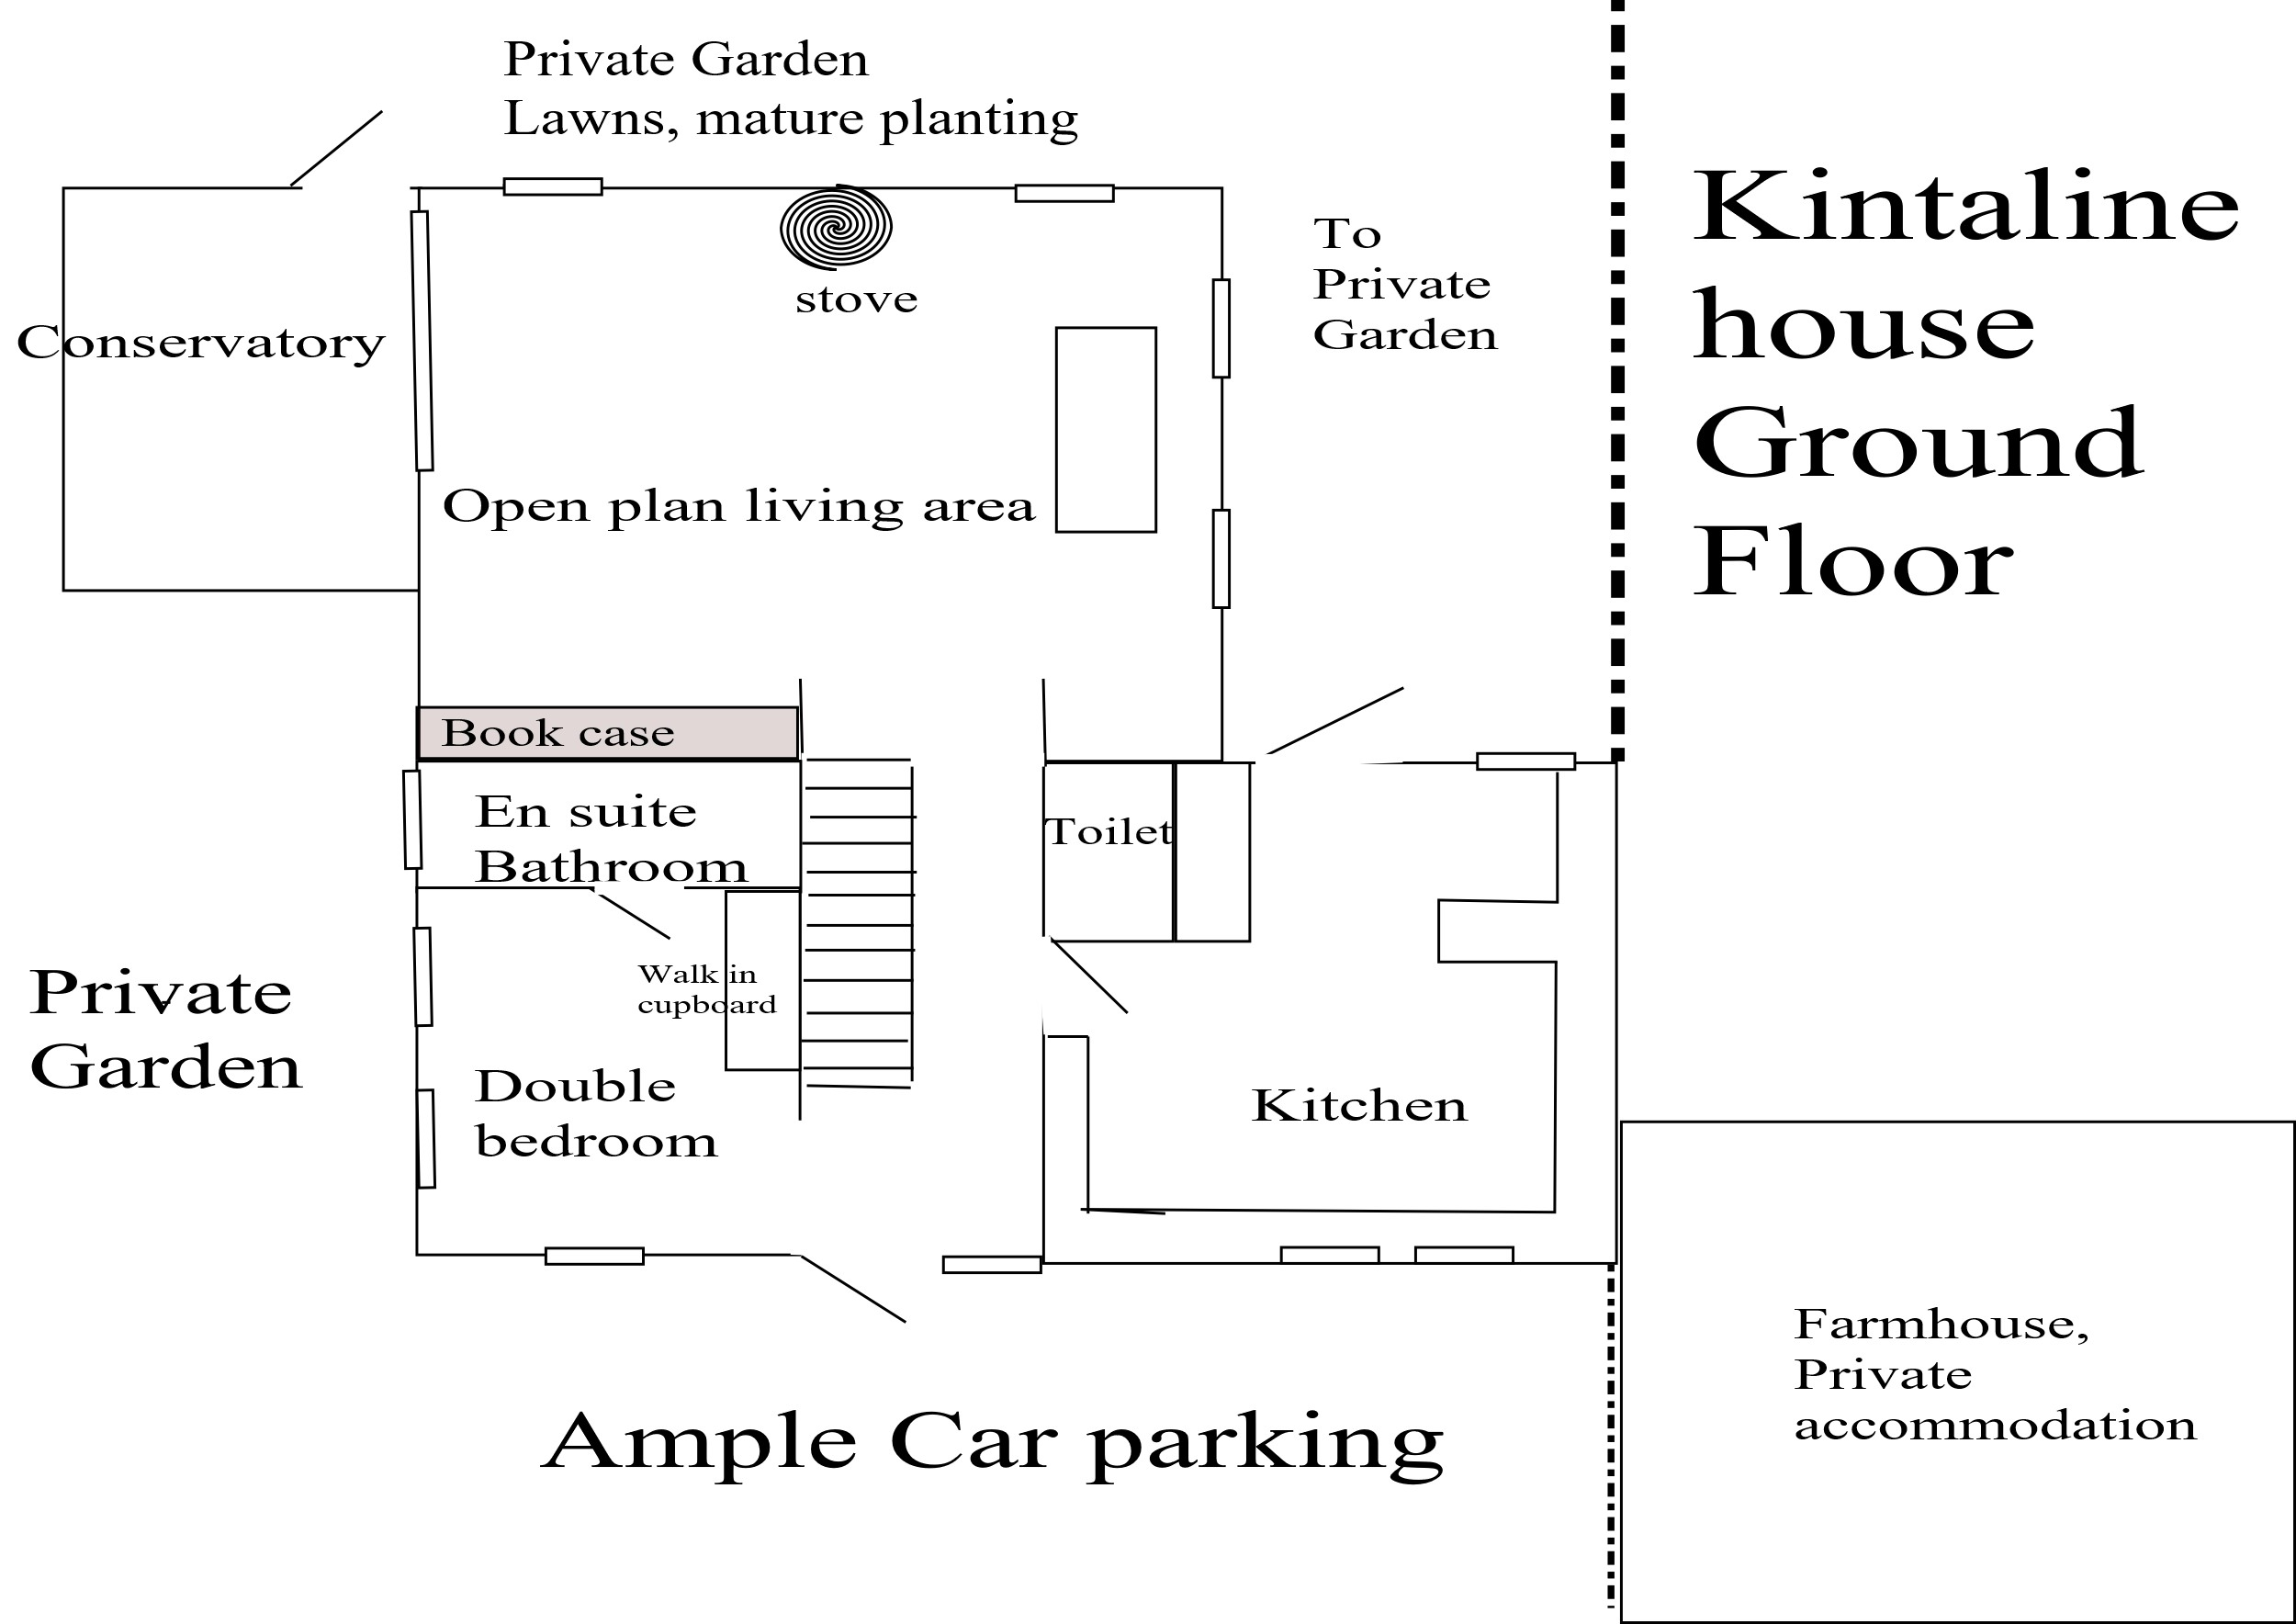 Kintaline House Ground Floor plan